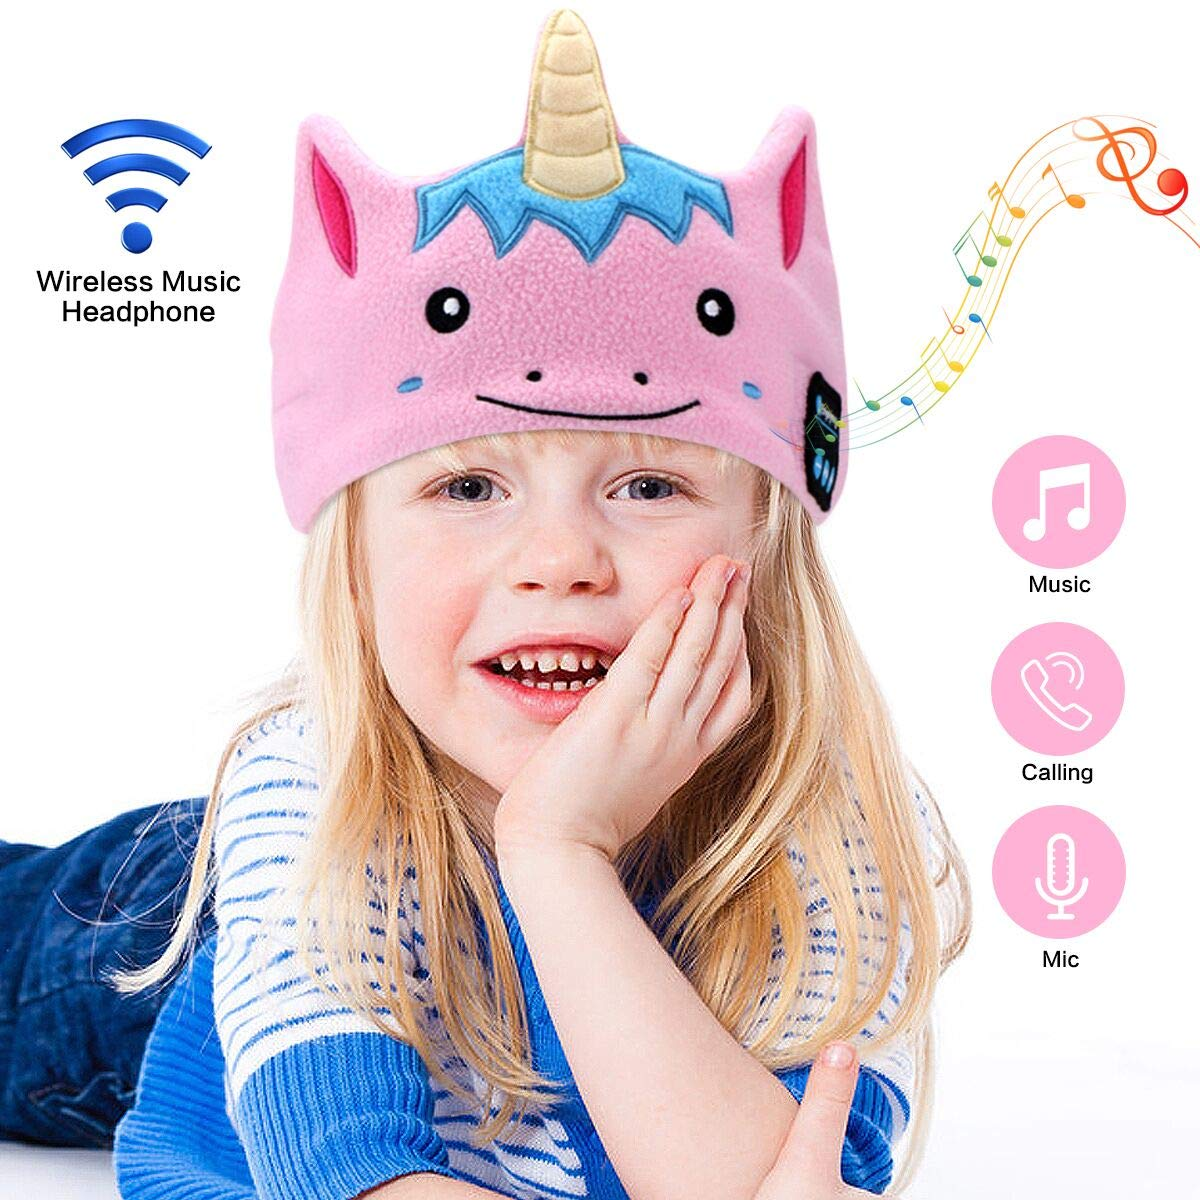 Kids Headphones Headbands,WU-MINGLU Soft Fleece Bluetooth Headbands Sleep Headphones wih Ultra-Thin Speakers, Children\'s Earphones for School, Home and Travel, Idea